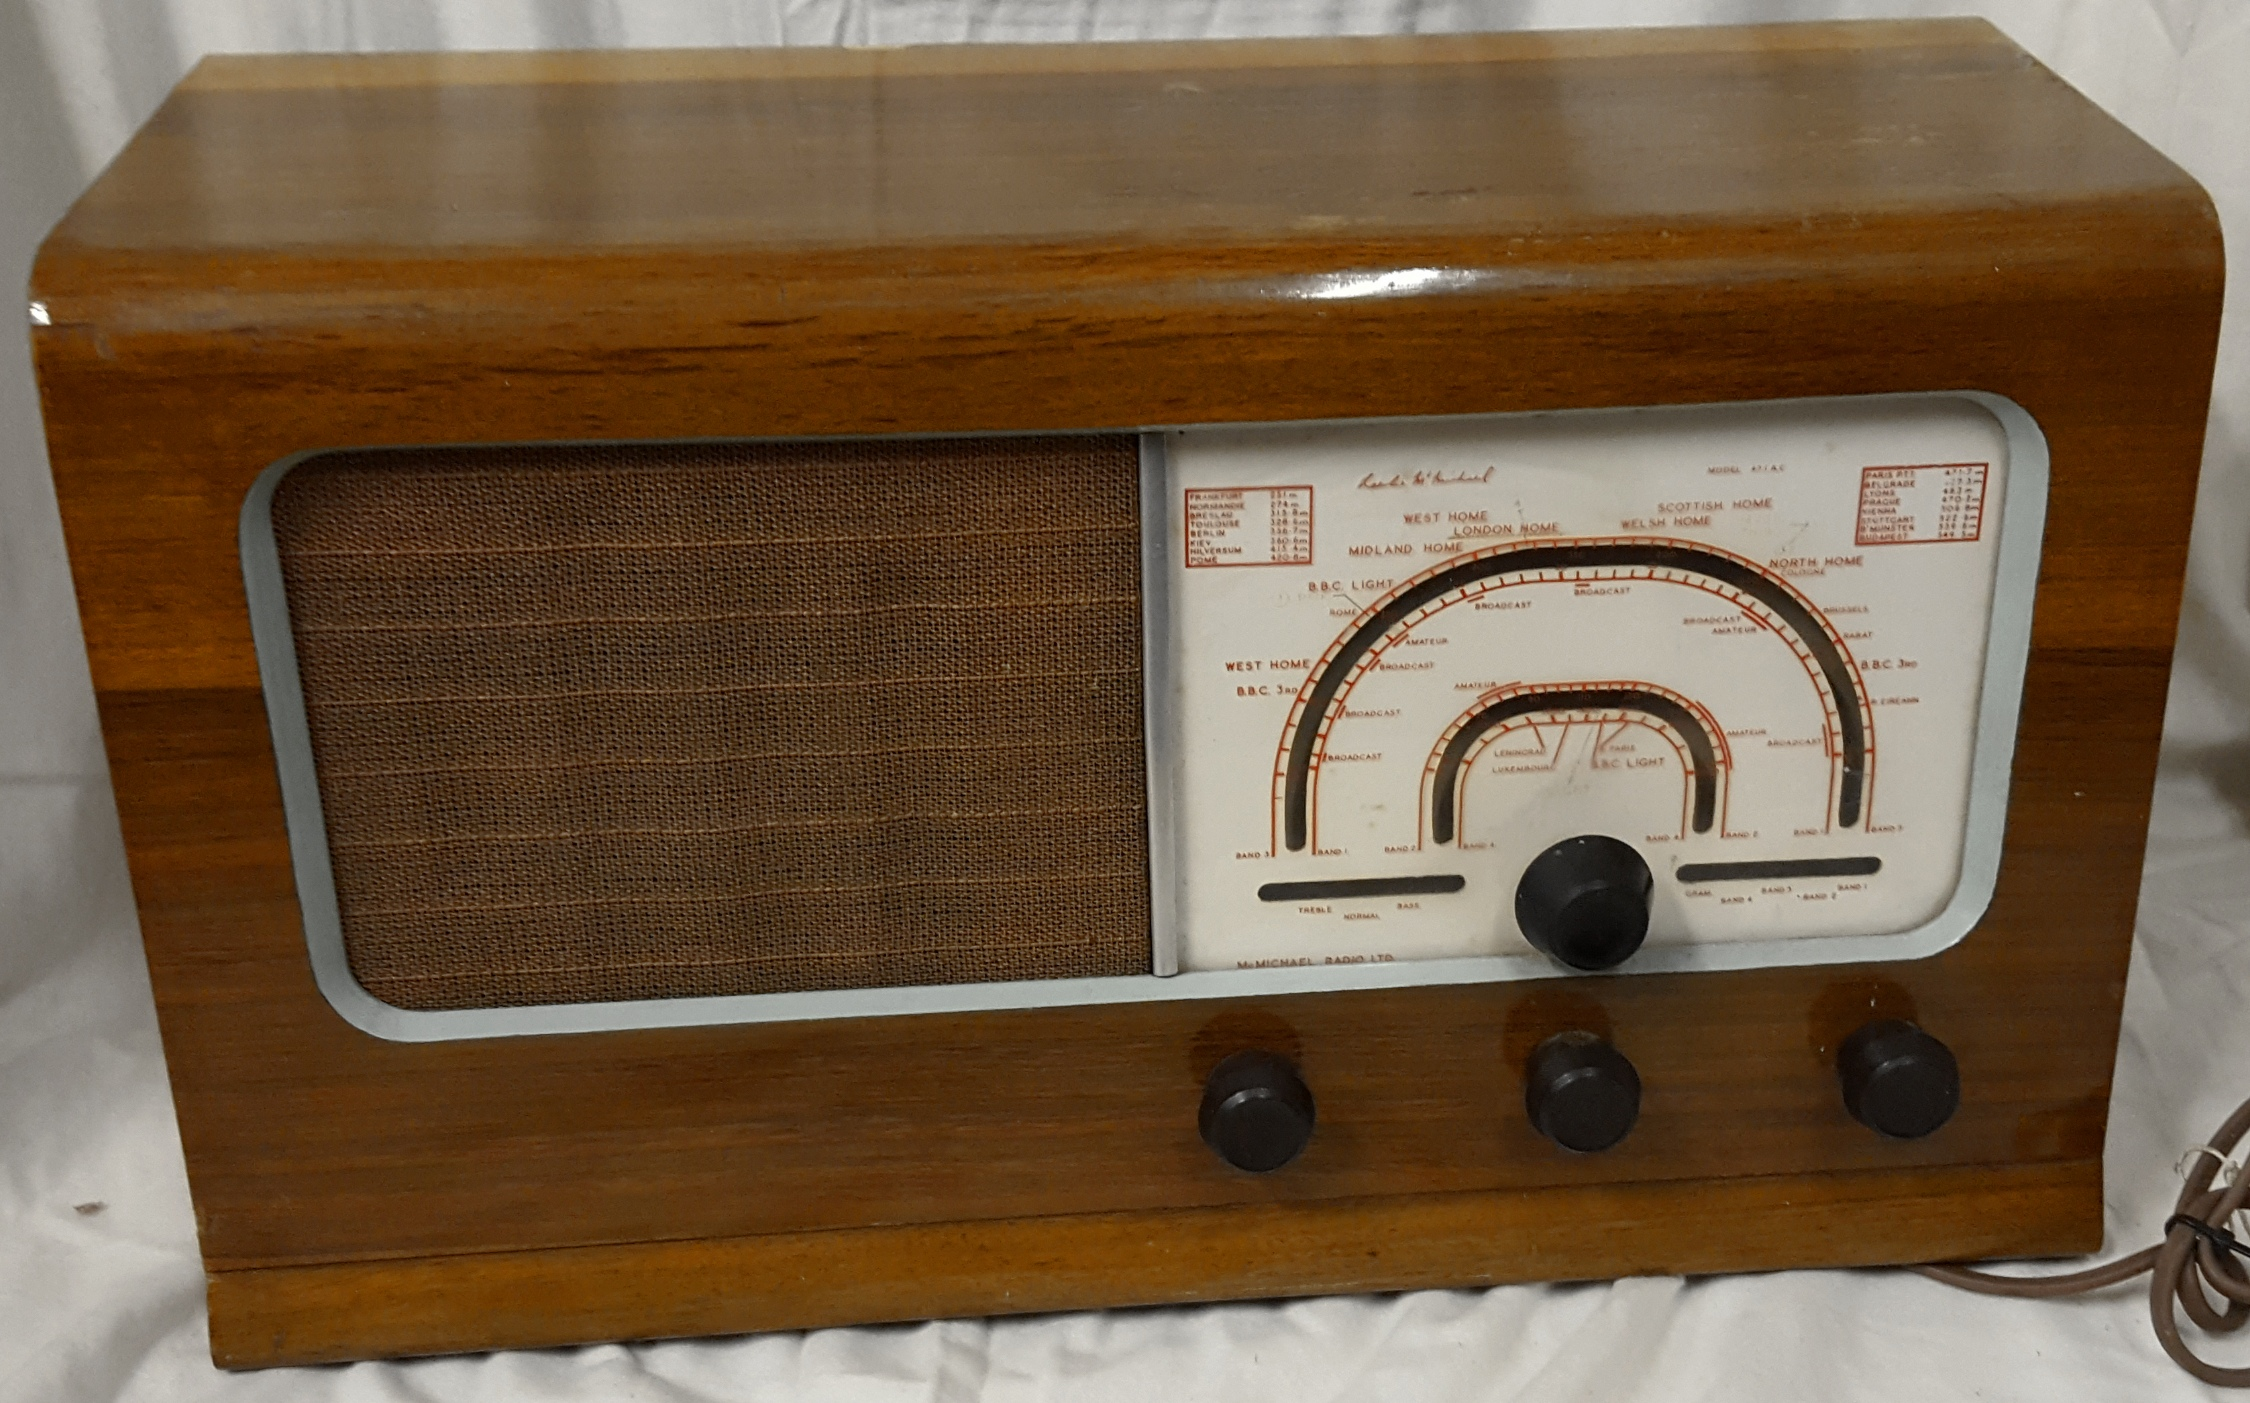 Antique Vintage Retro McMichael Wireless Radio Similar to Model 471U